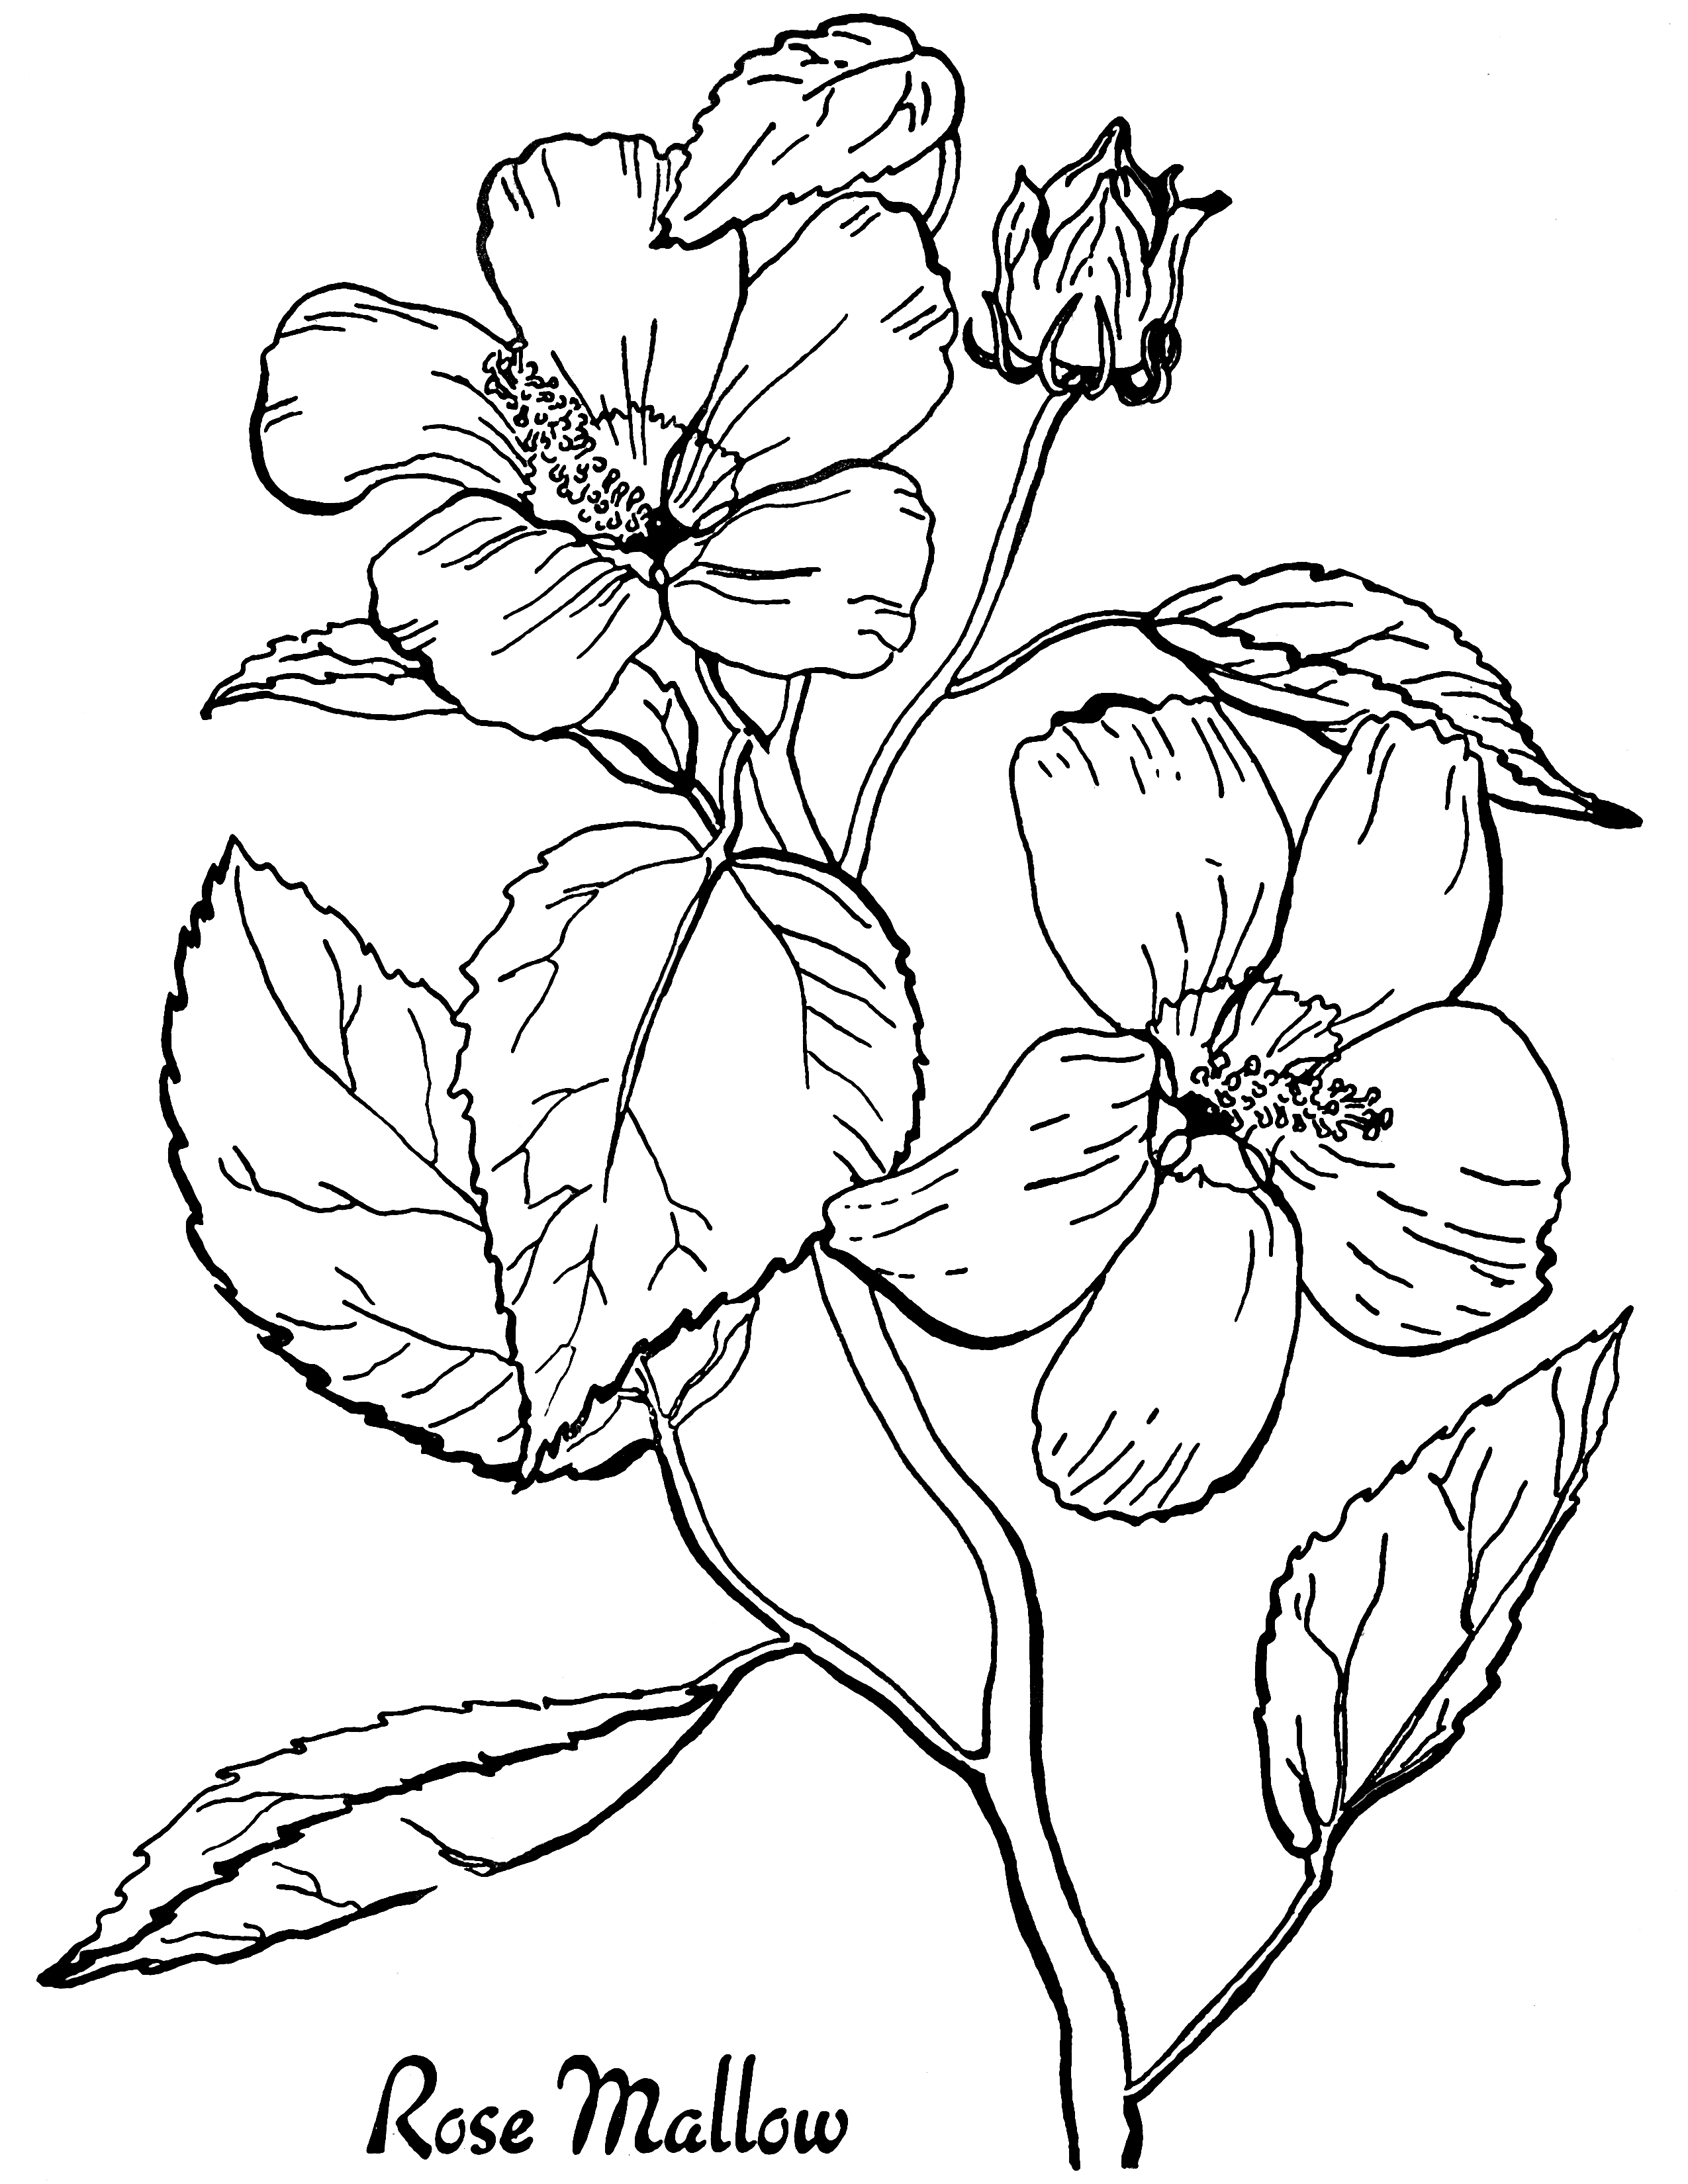 coloring pictures roses roses coloring pages getcoloringpagescom pictures coloring roses